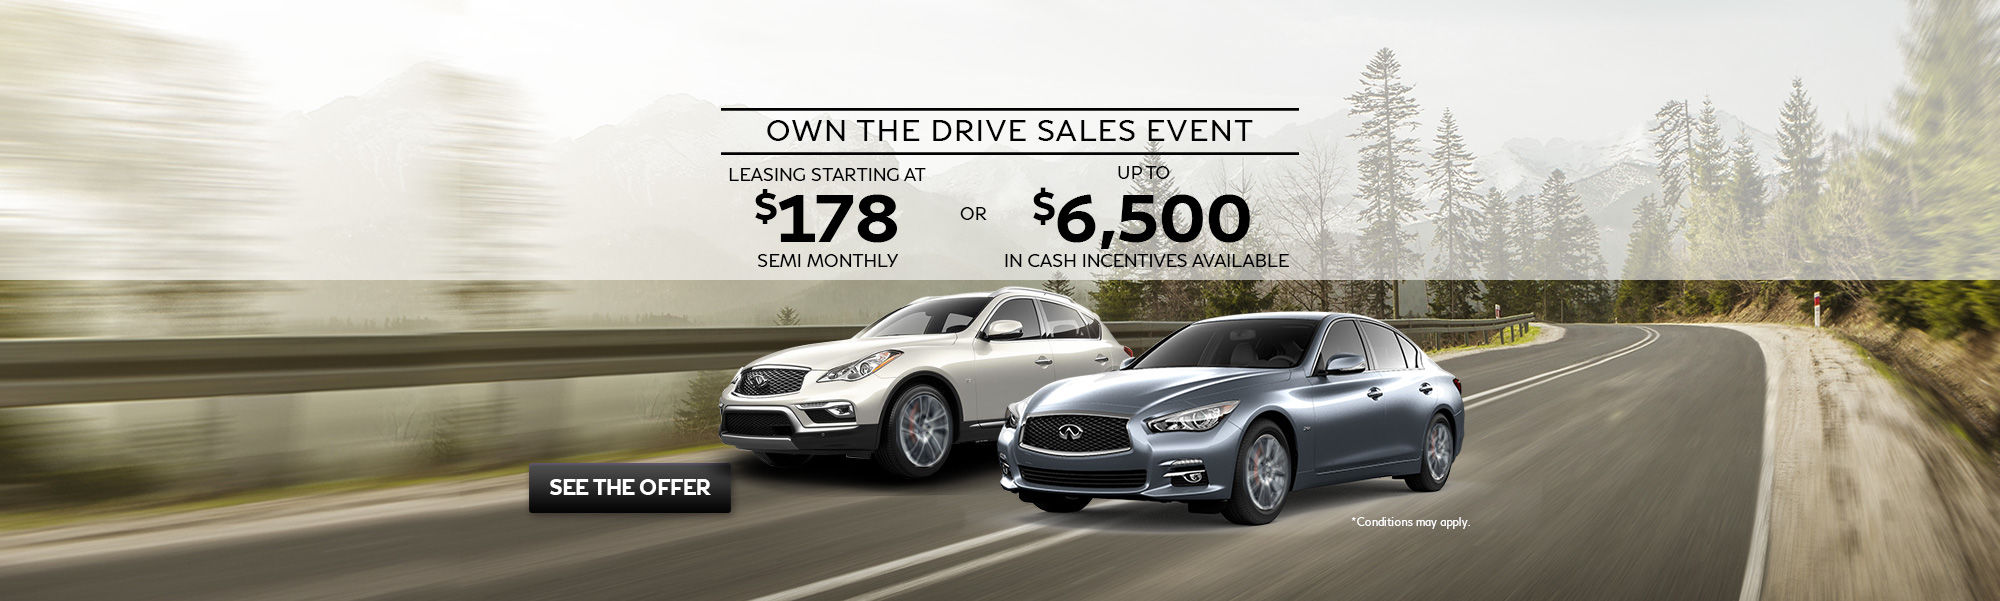 Own The Drive Sales Event